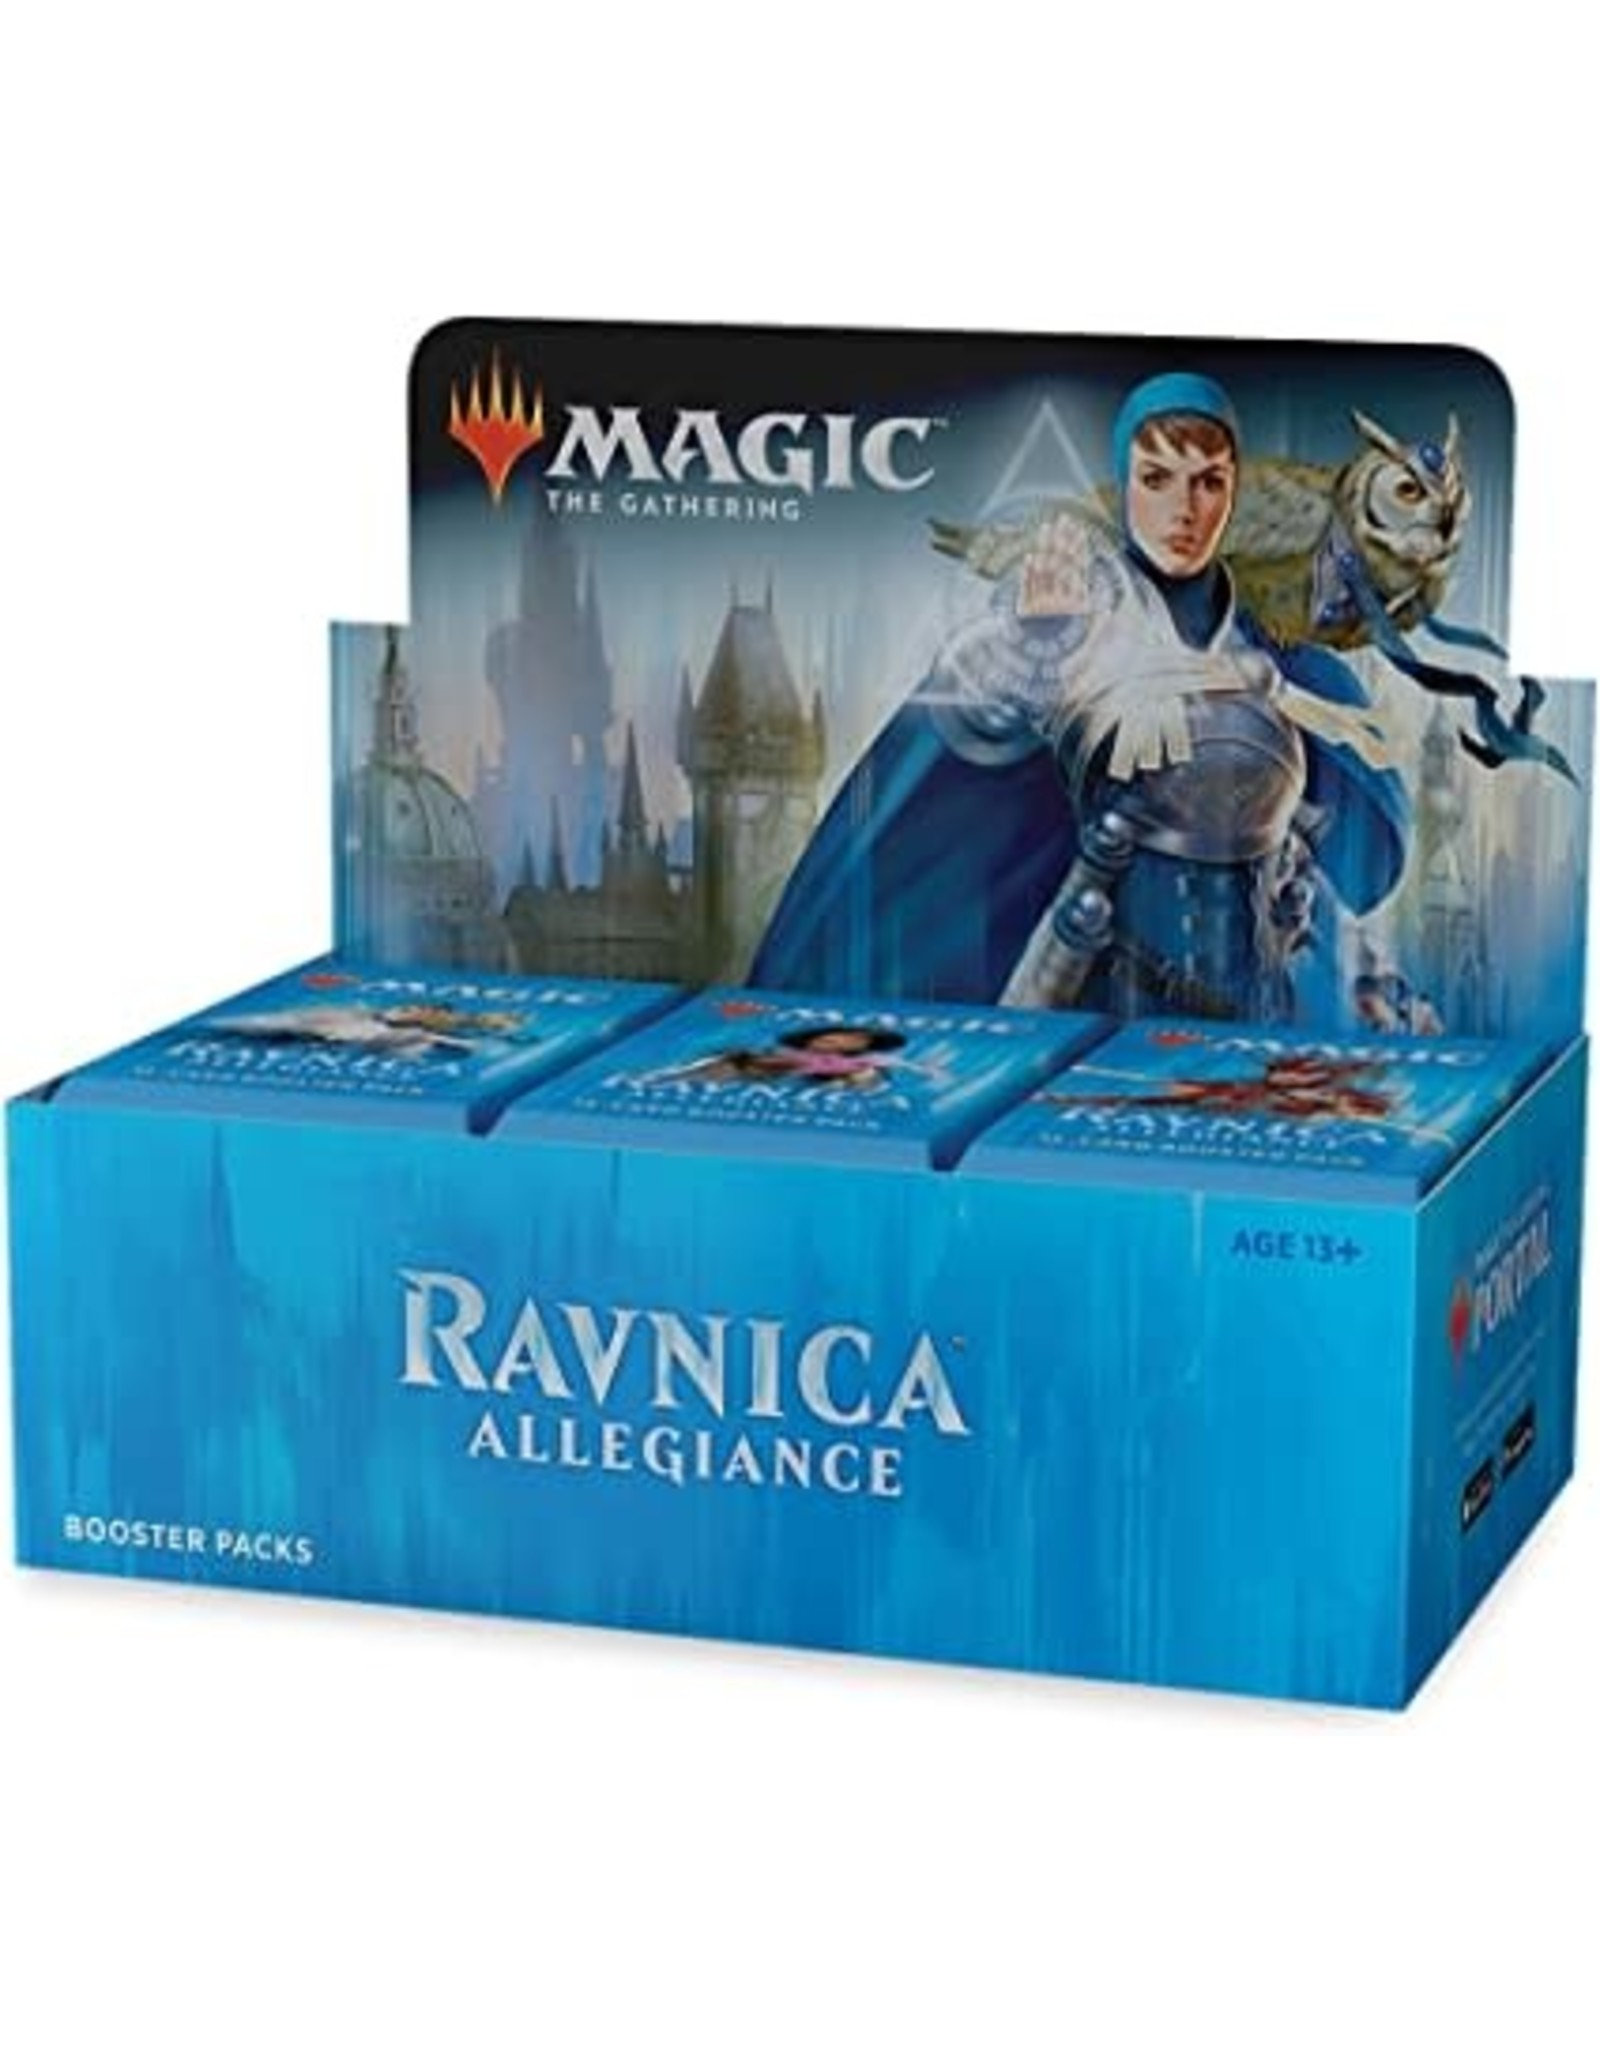 Magic: The Gathering Magic: The Gathering - Ravnica Allegiance Booster Box